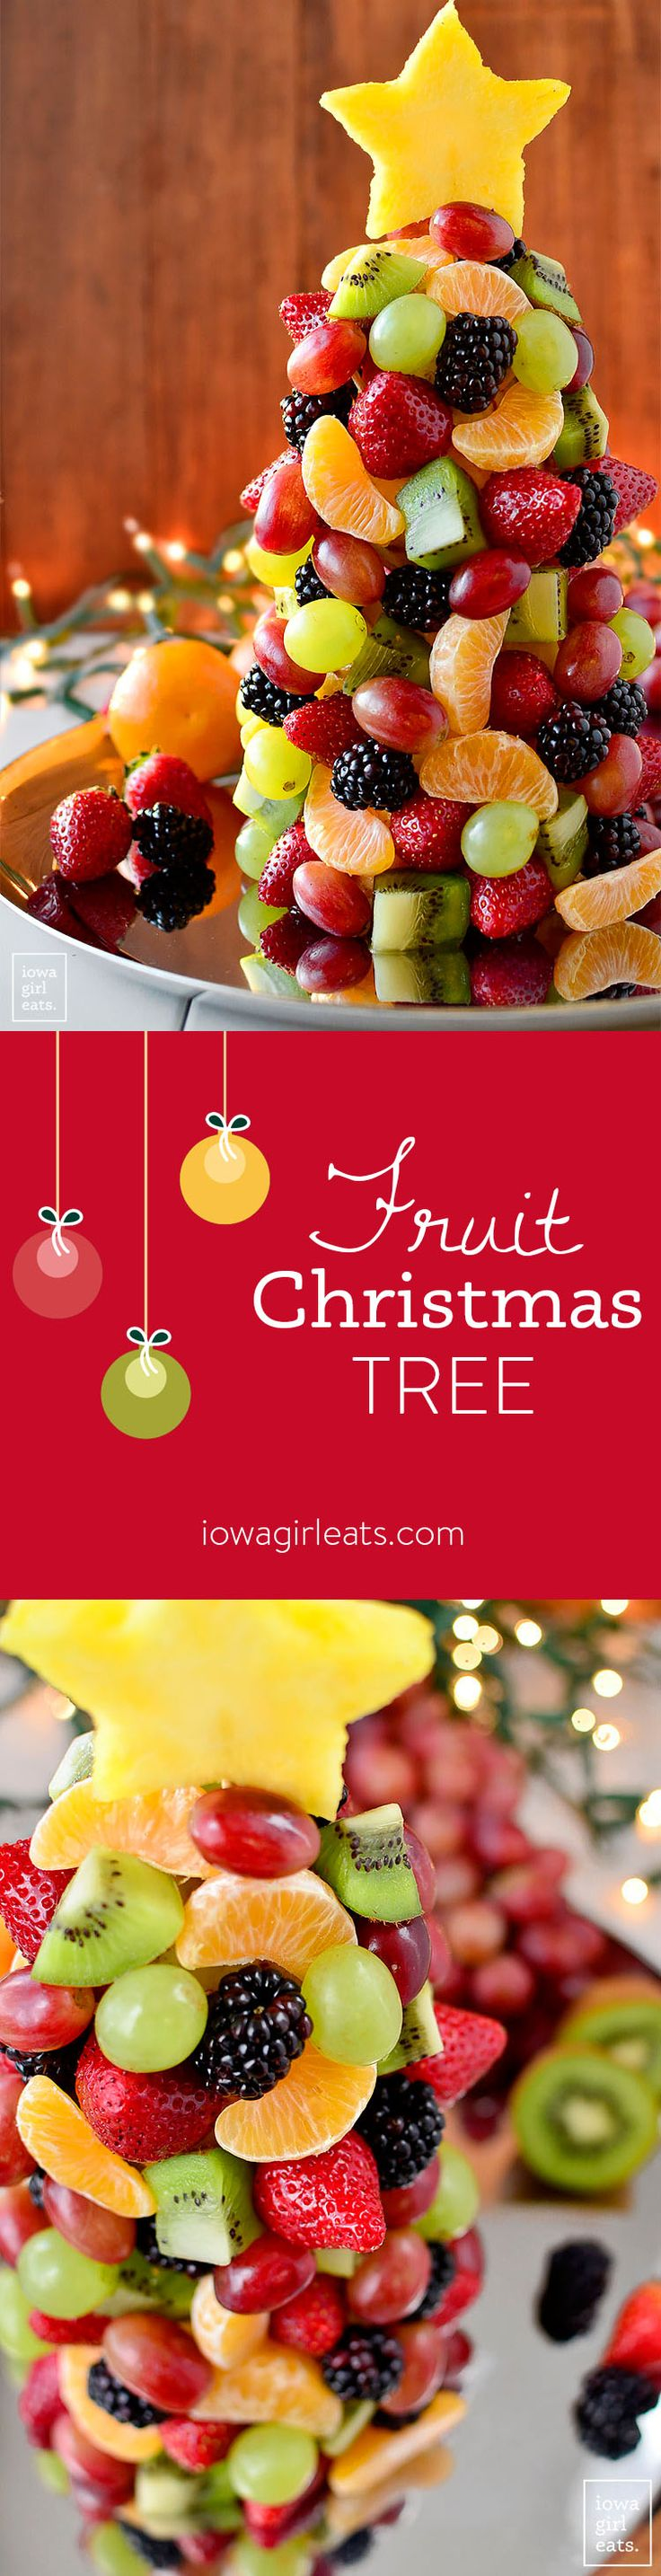 Christmas dessert table decoration ideas - Fruit Christmas Tree Fruit Christmas Treetable Centerpiecesholiday Traditionsfruit Plattersdessert